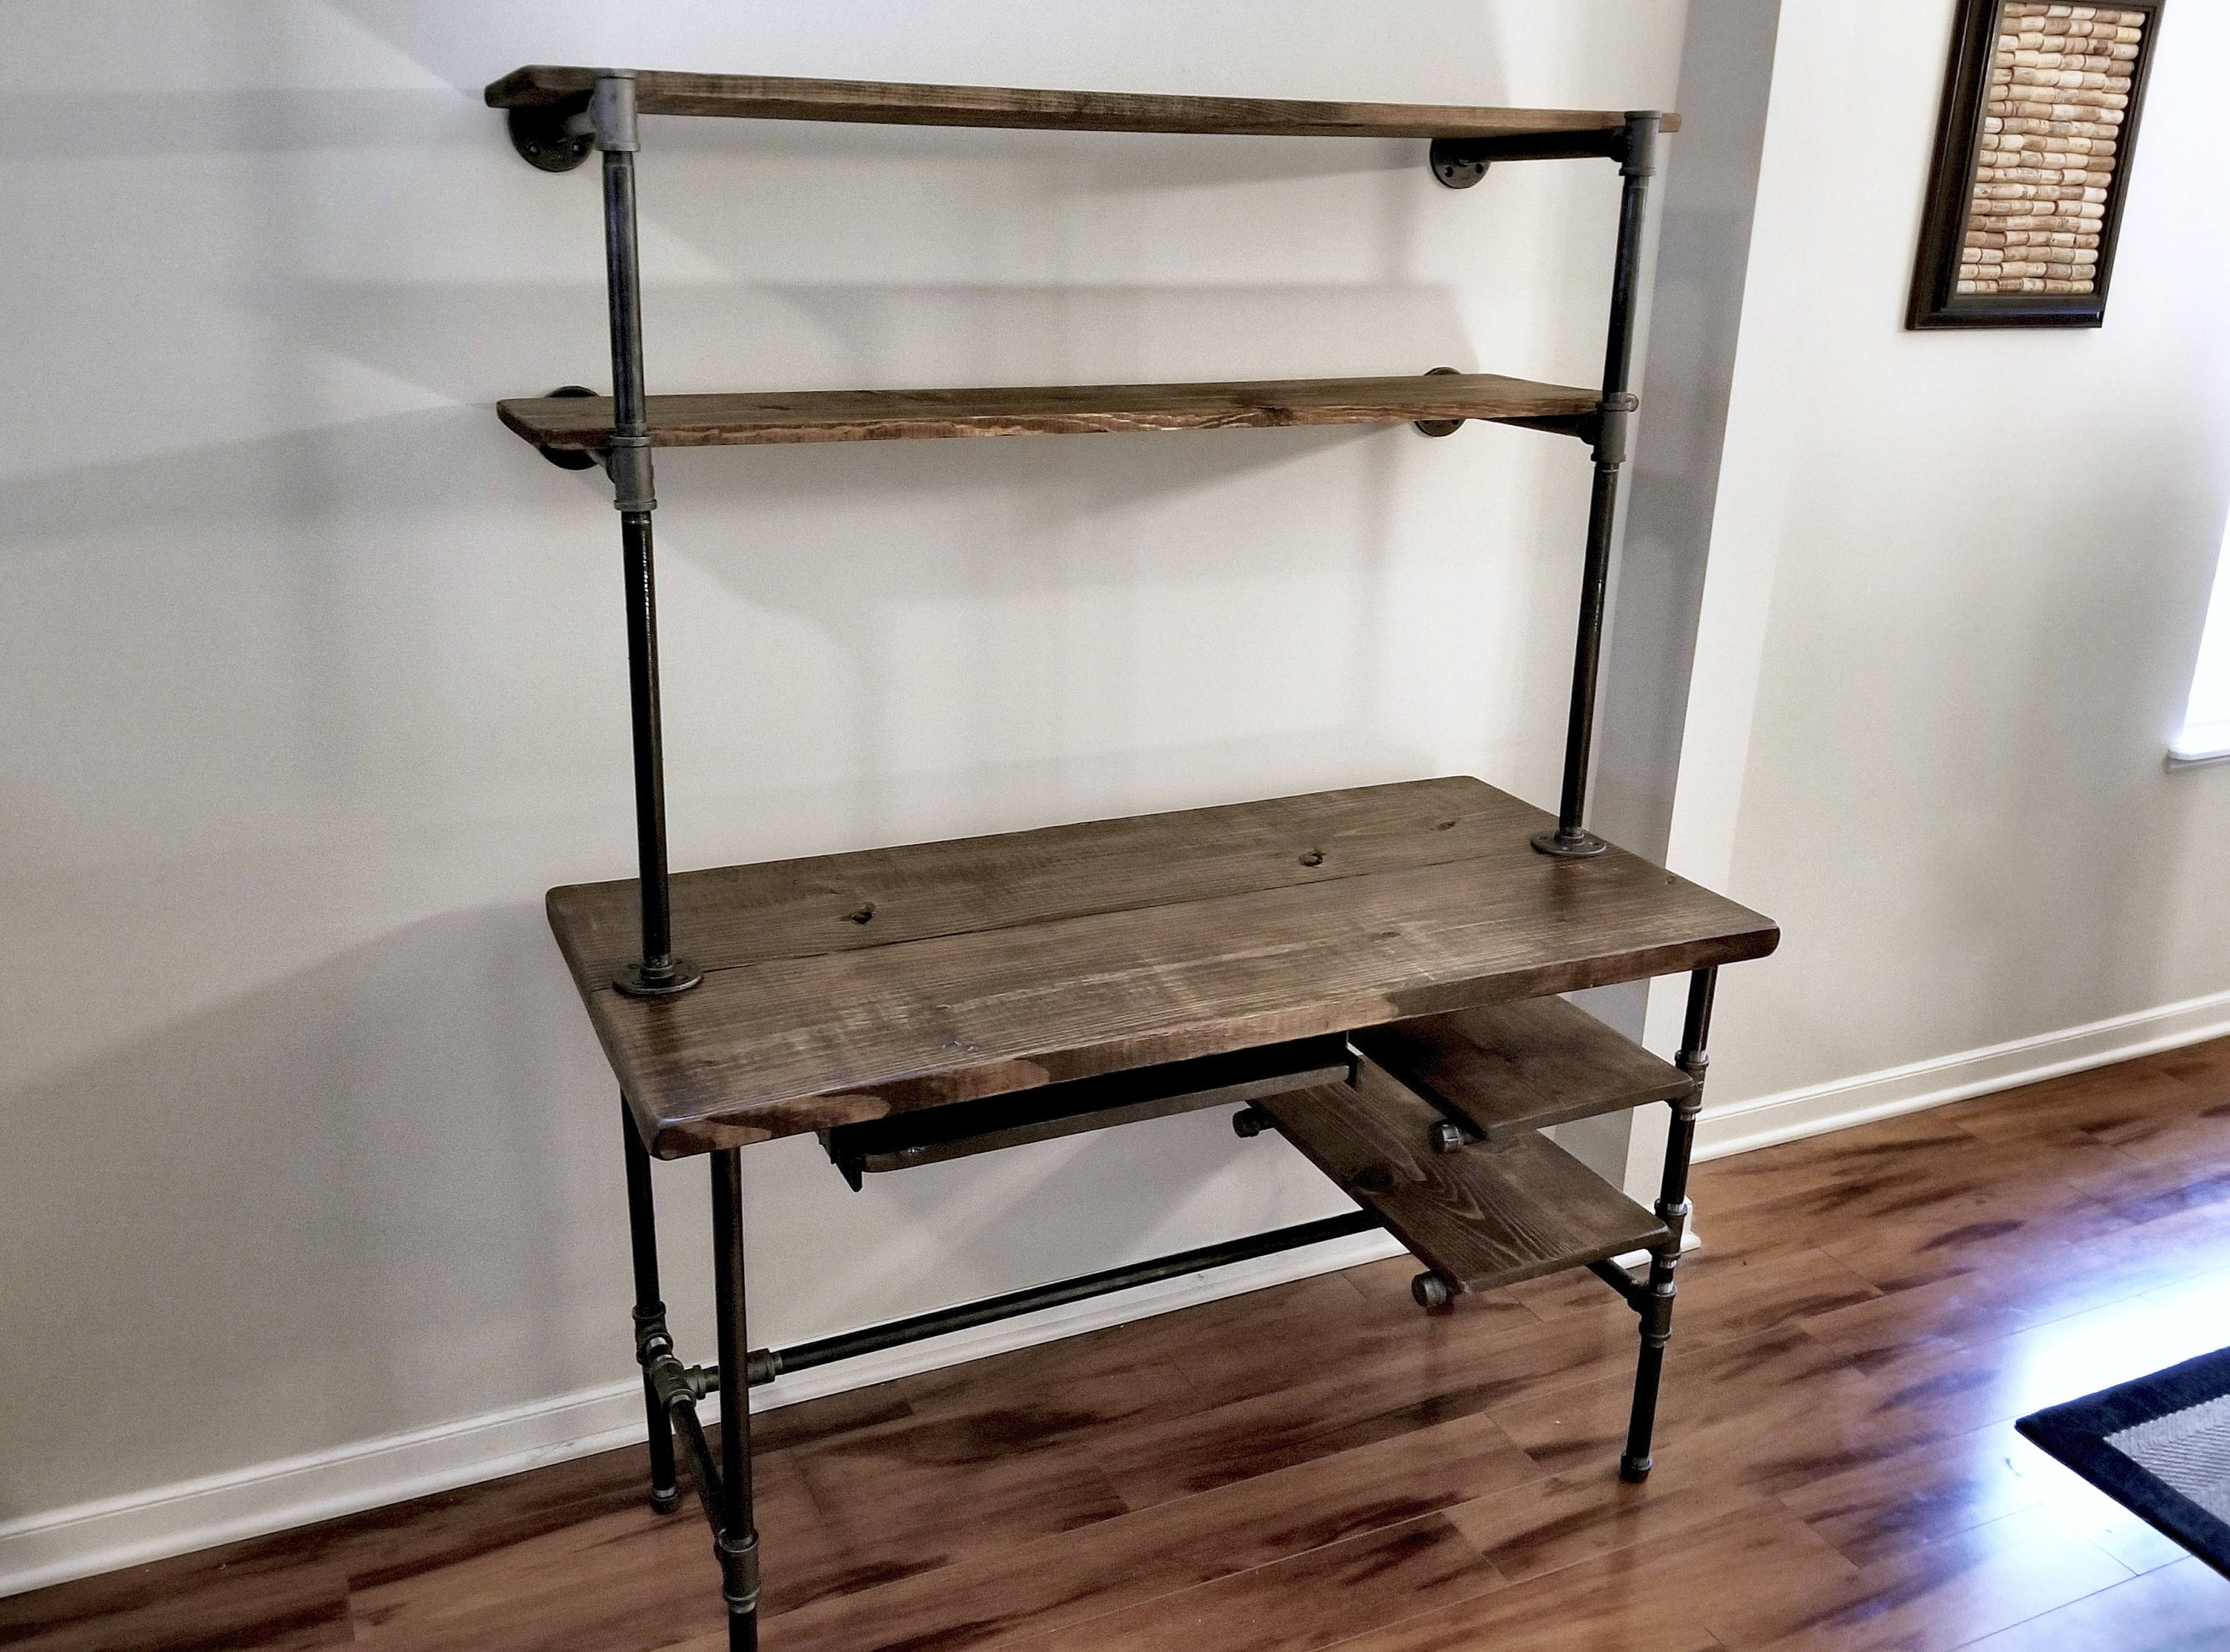 Steel and Wood Desk - Office Iron Pipe Desk with Keyboard Tray - 2 Desk Shelves and 2 Wall Shelves - Multiple Shelf